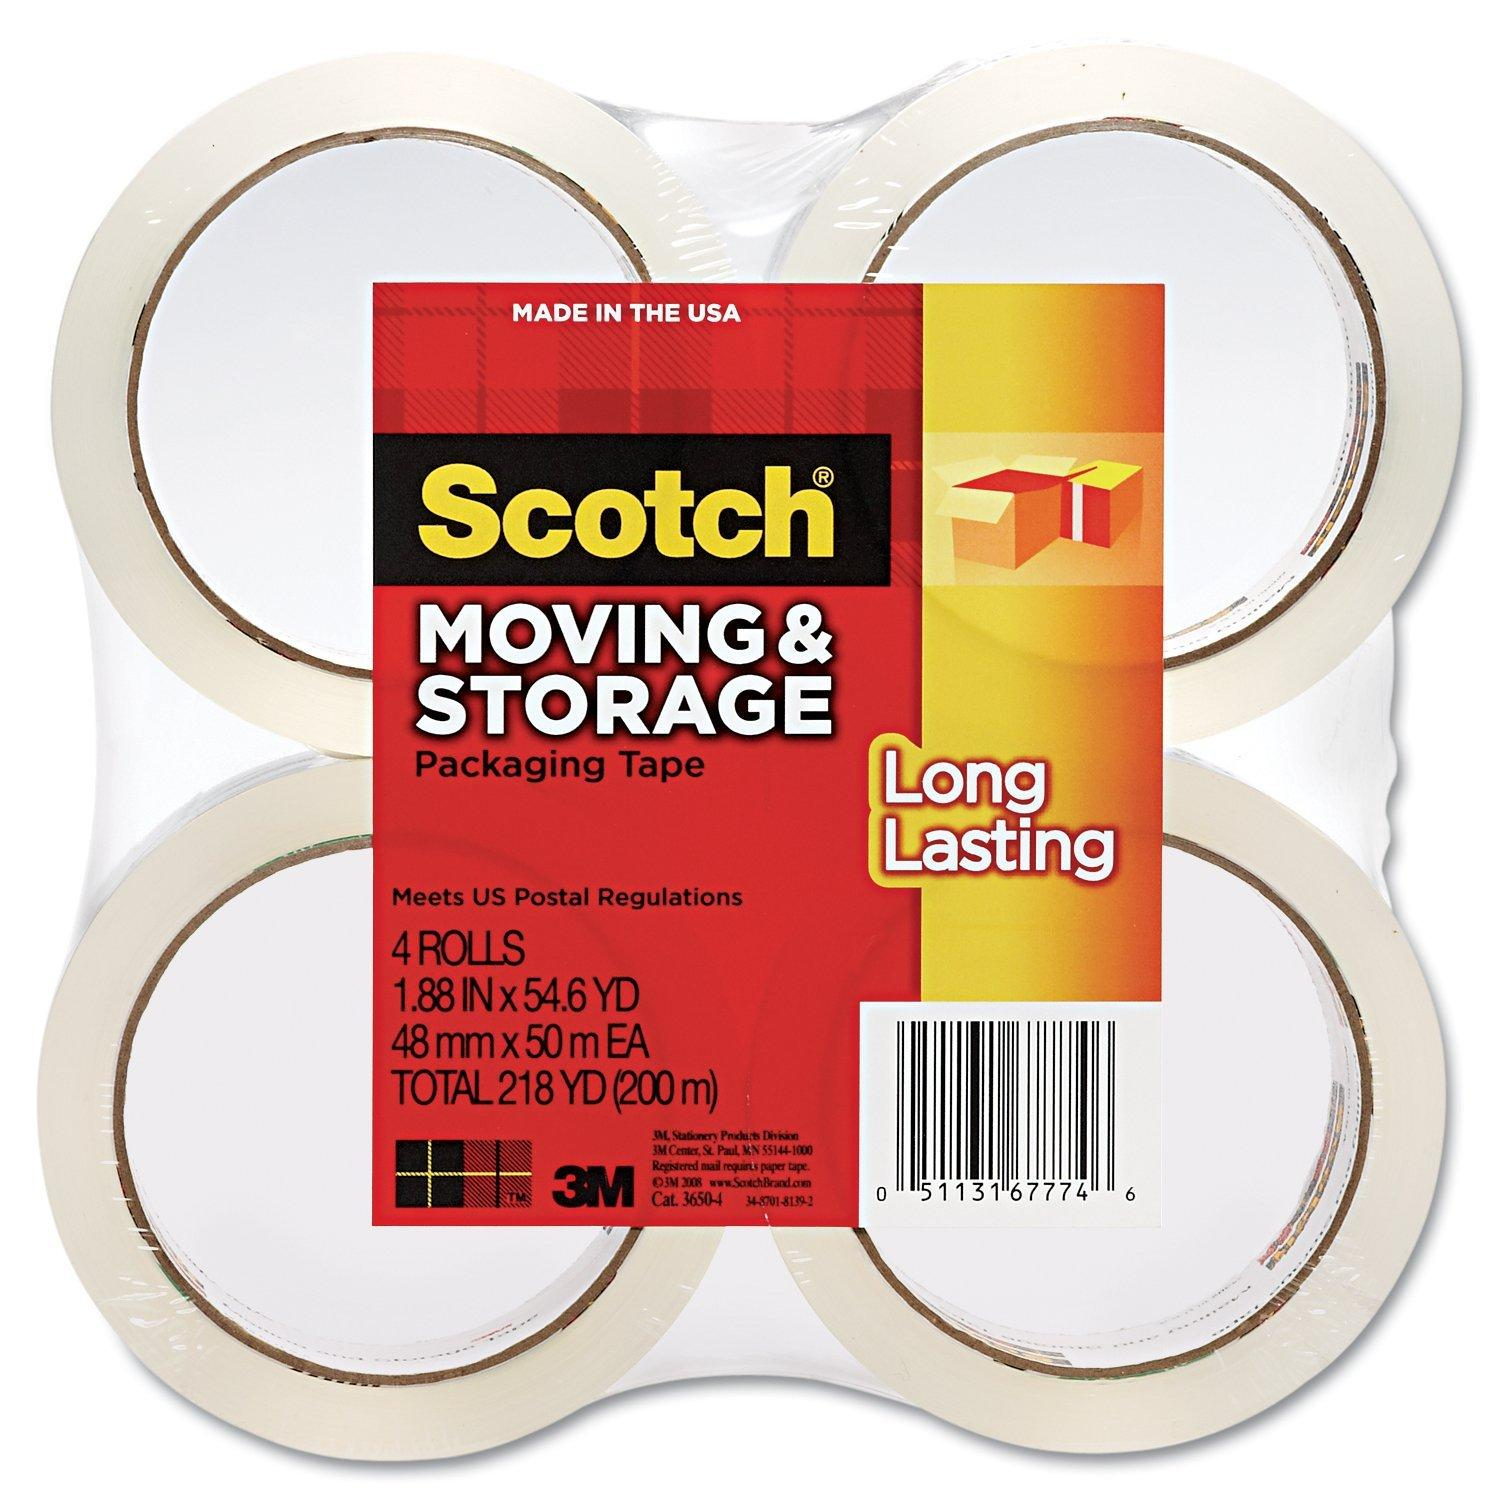 $7.79 Scotch Long Lasting Moving & Storage Packaging Tape